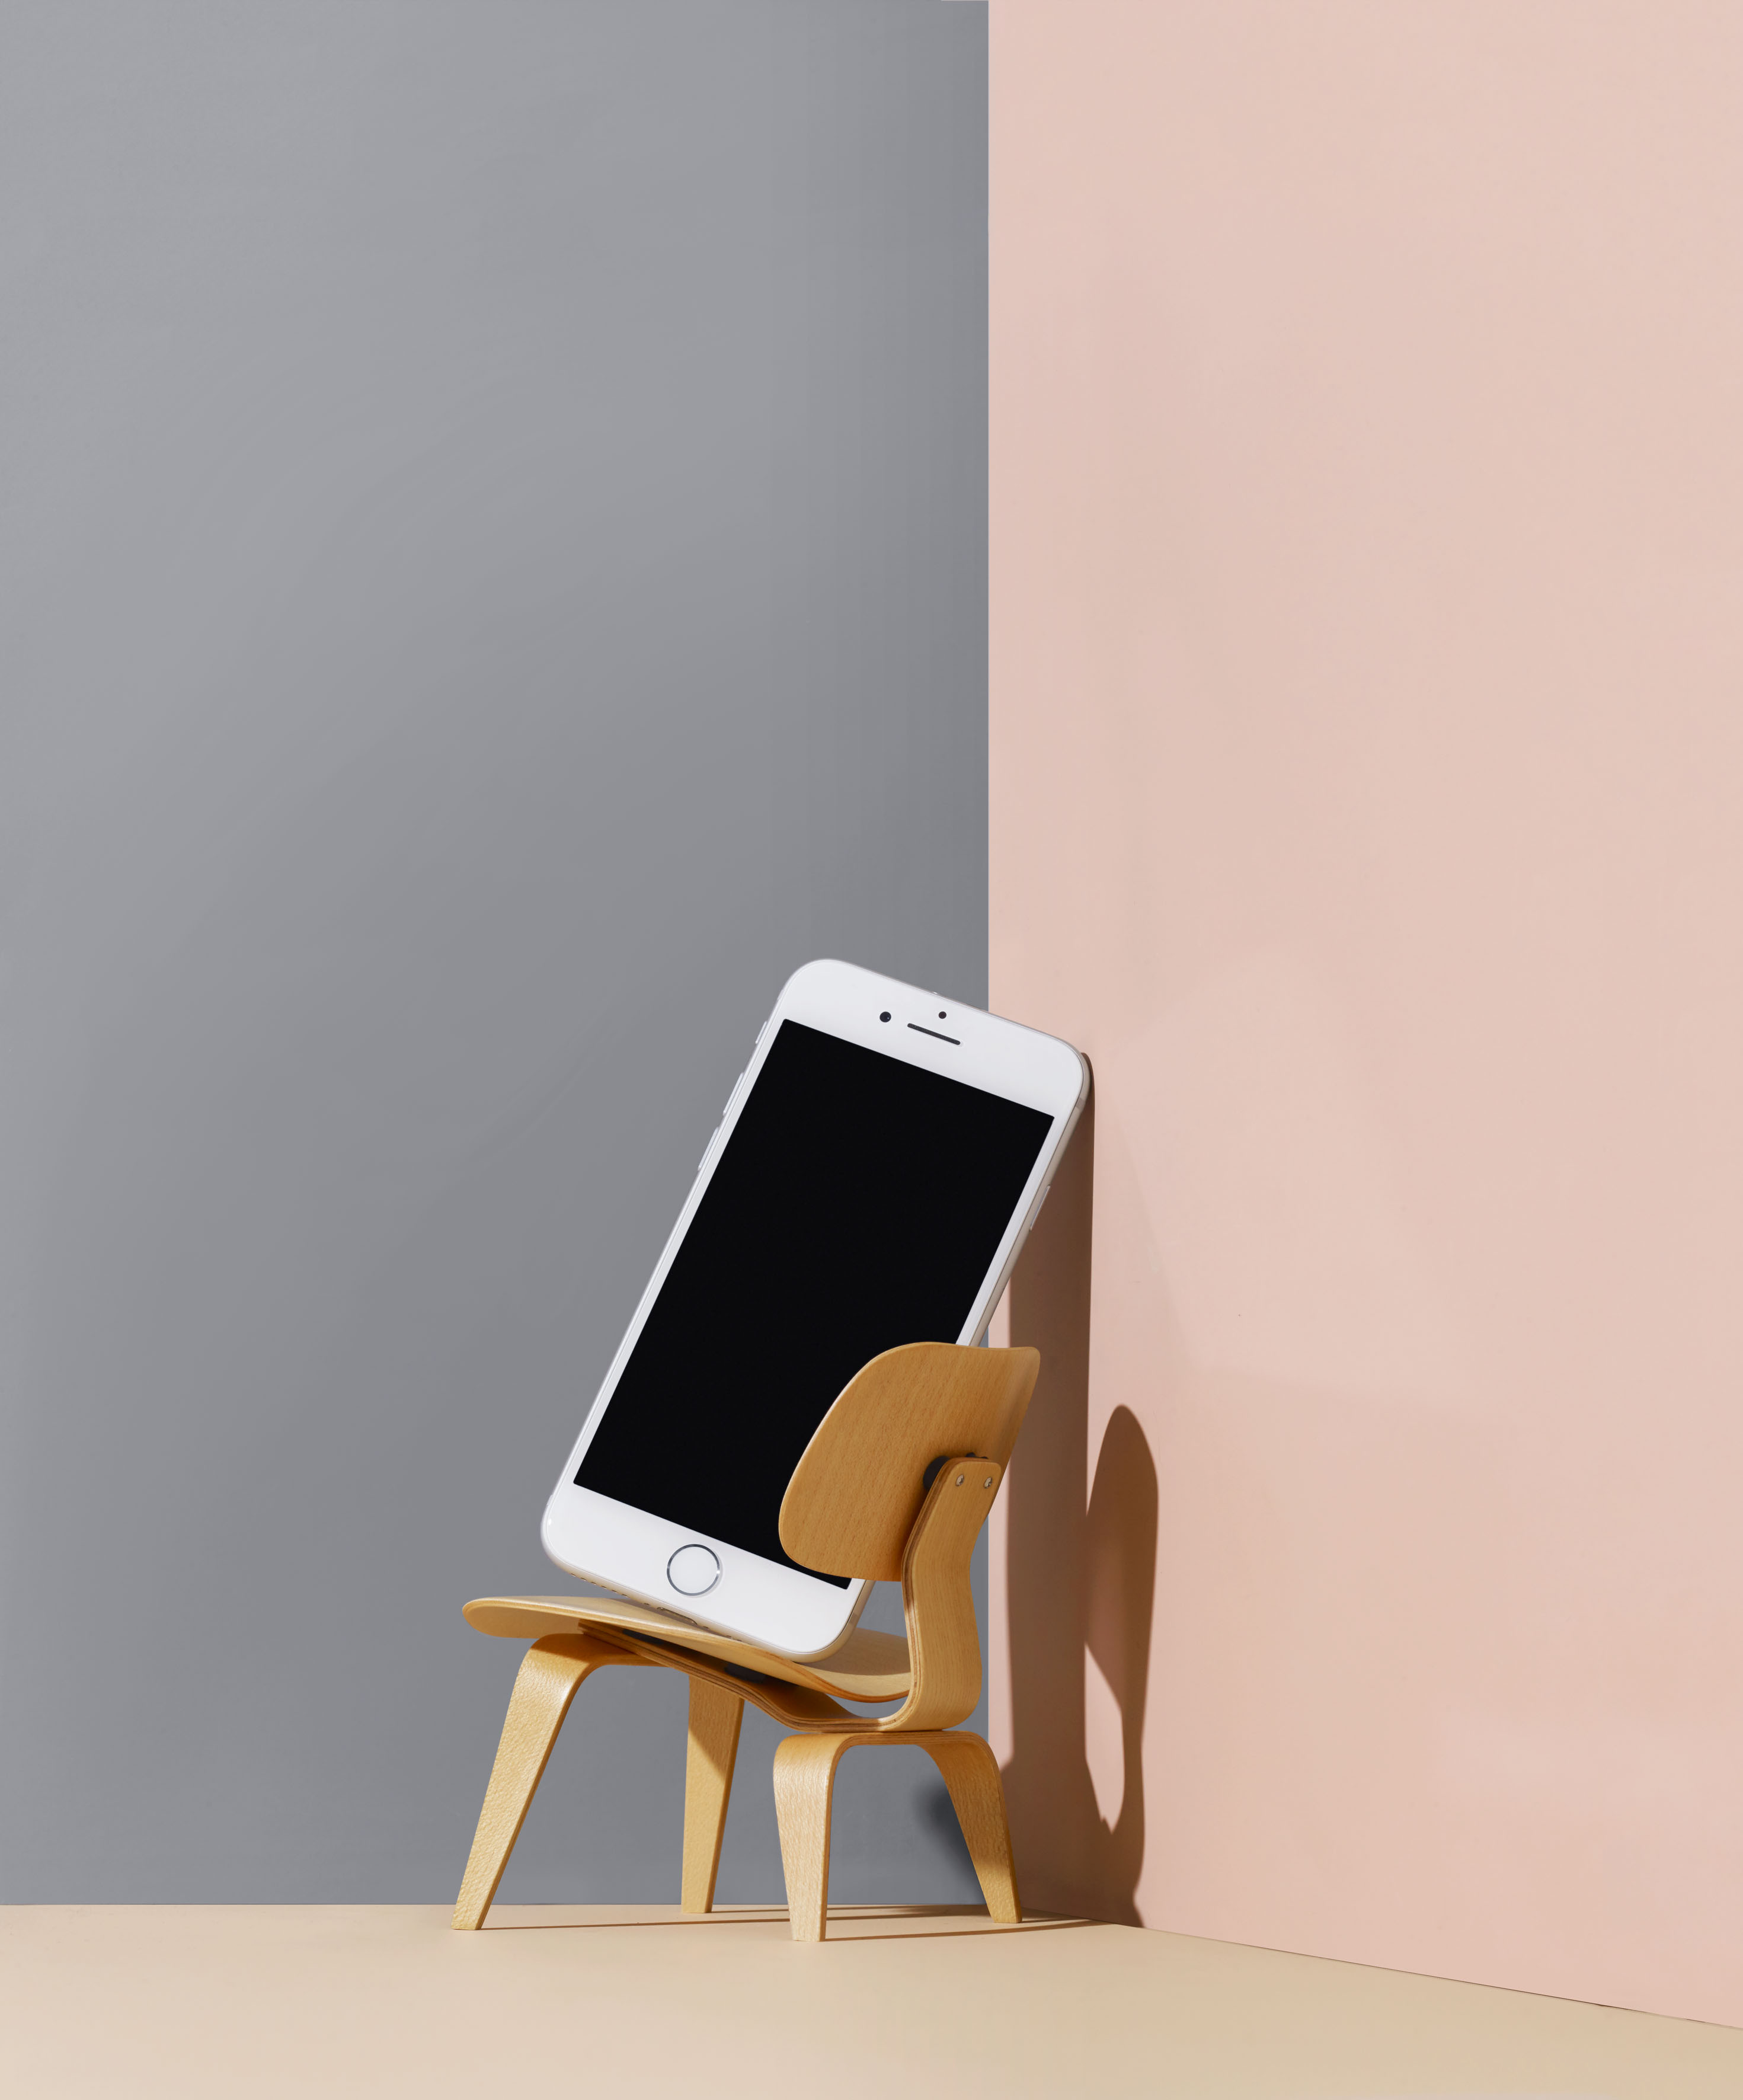 iphone on little wooden chair